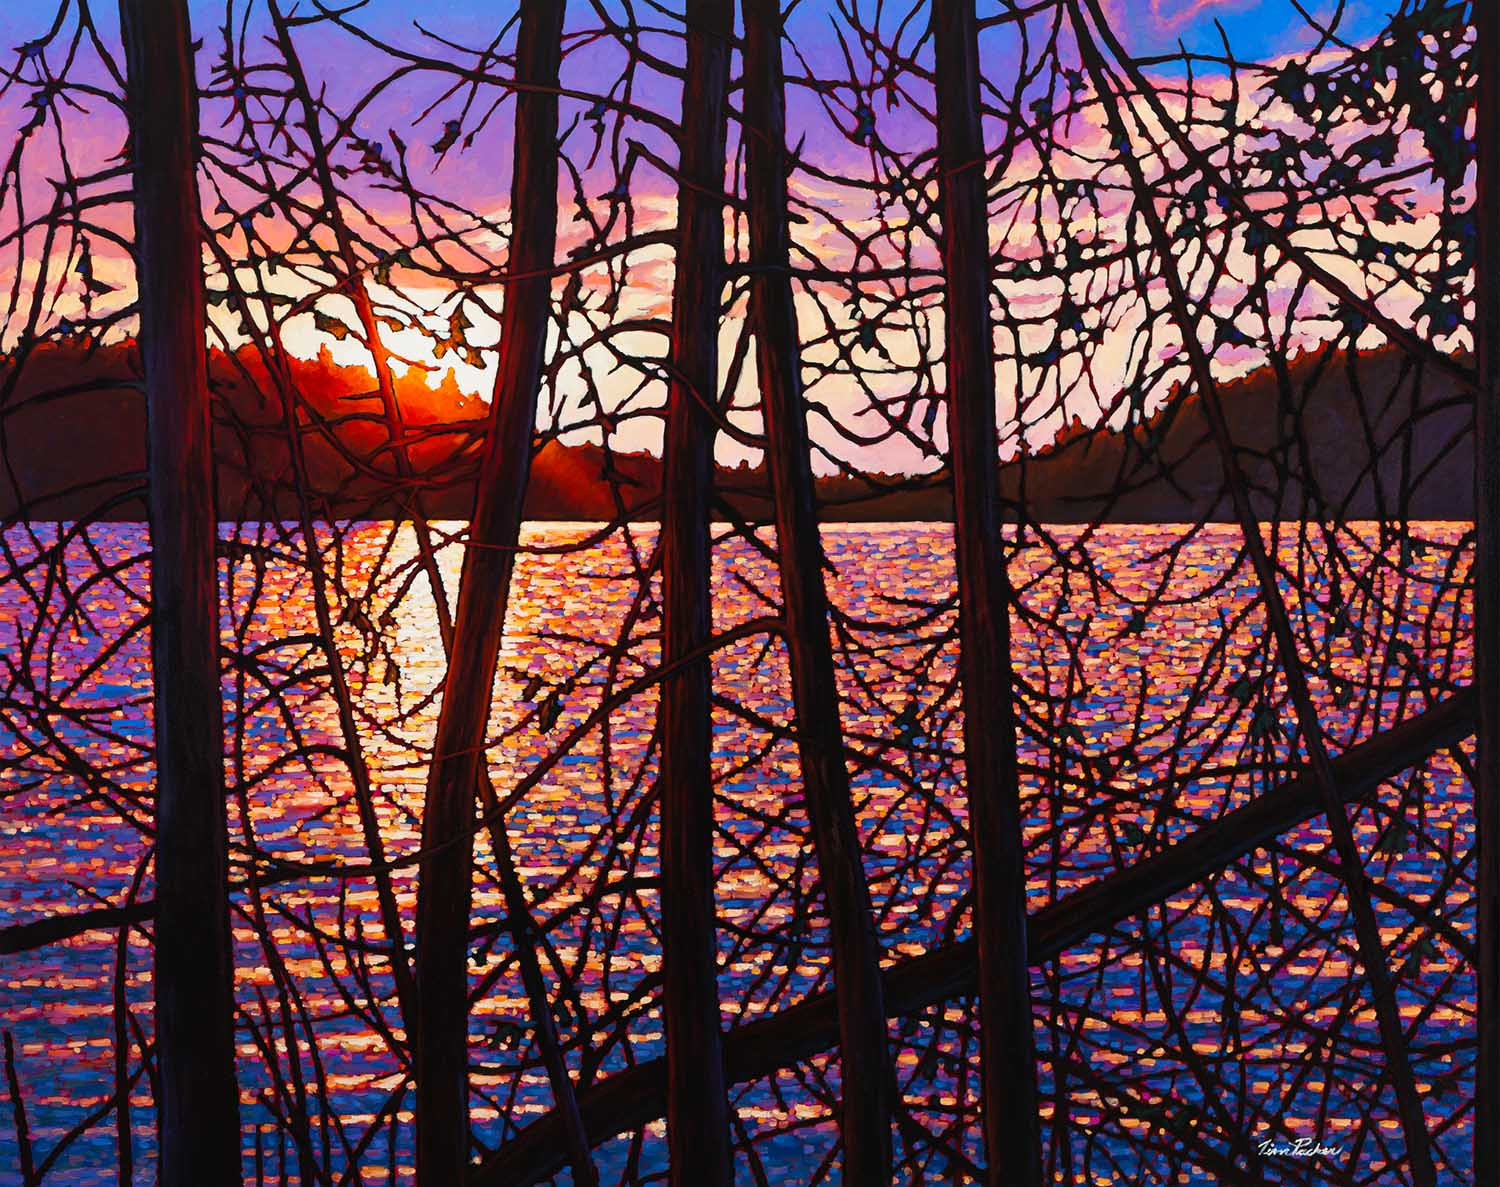 Day's End, Trapper's Trail - Tim Packer